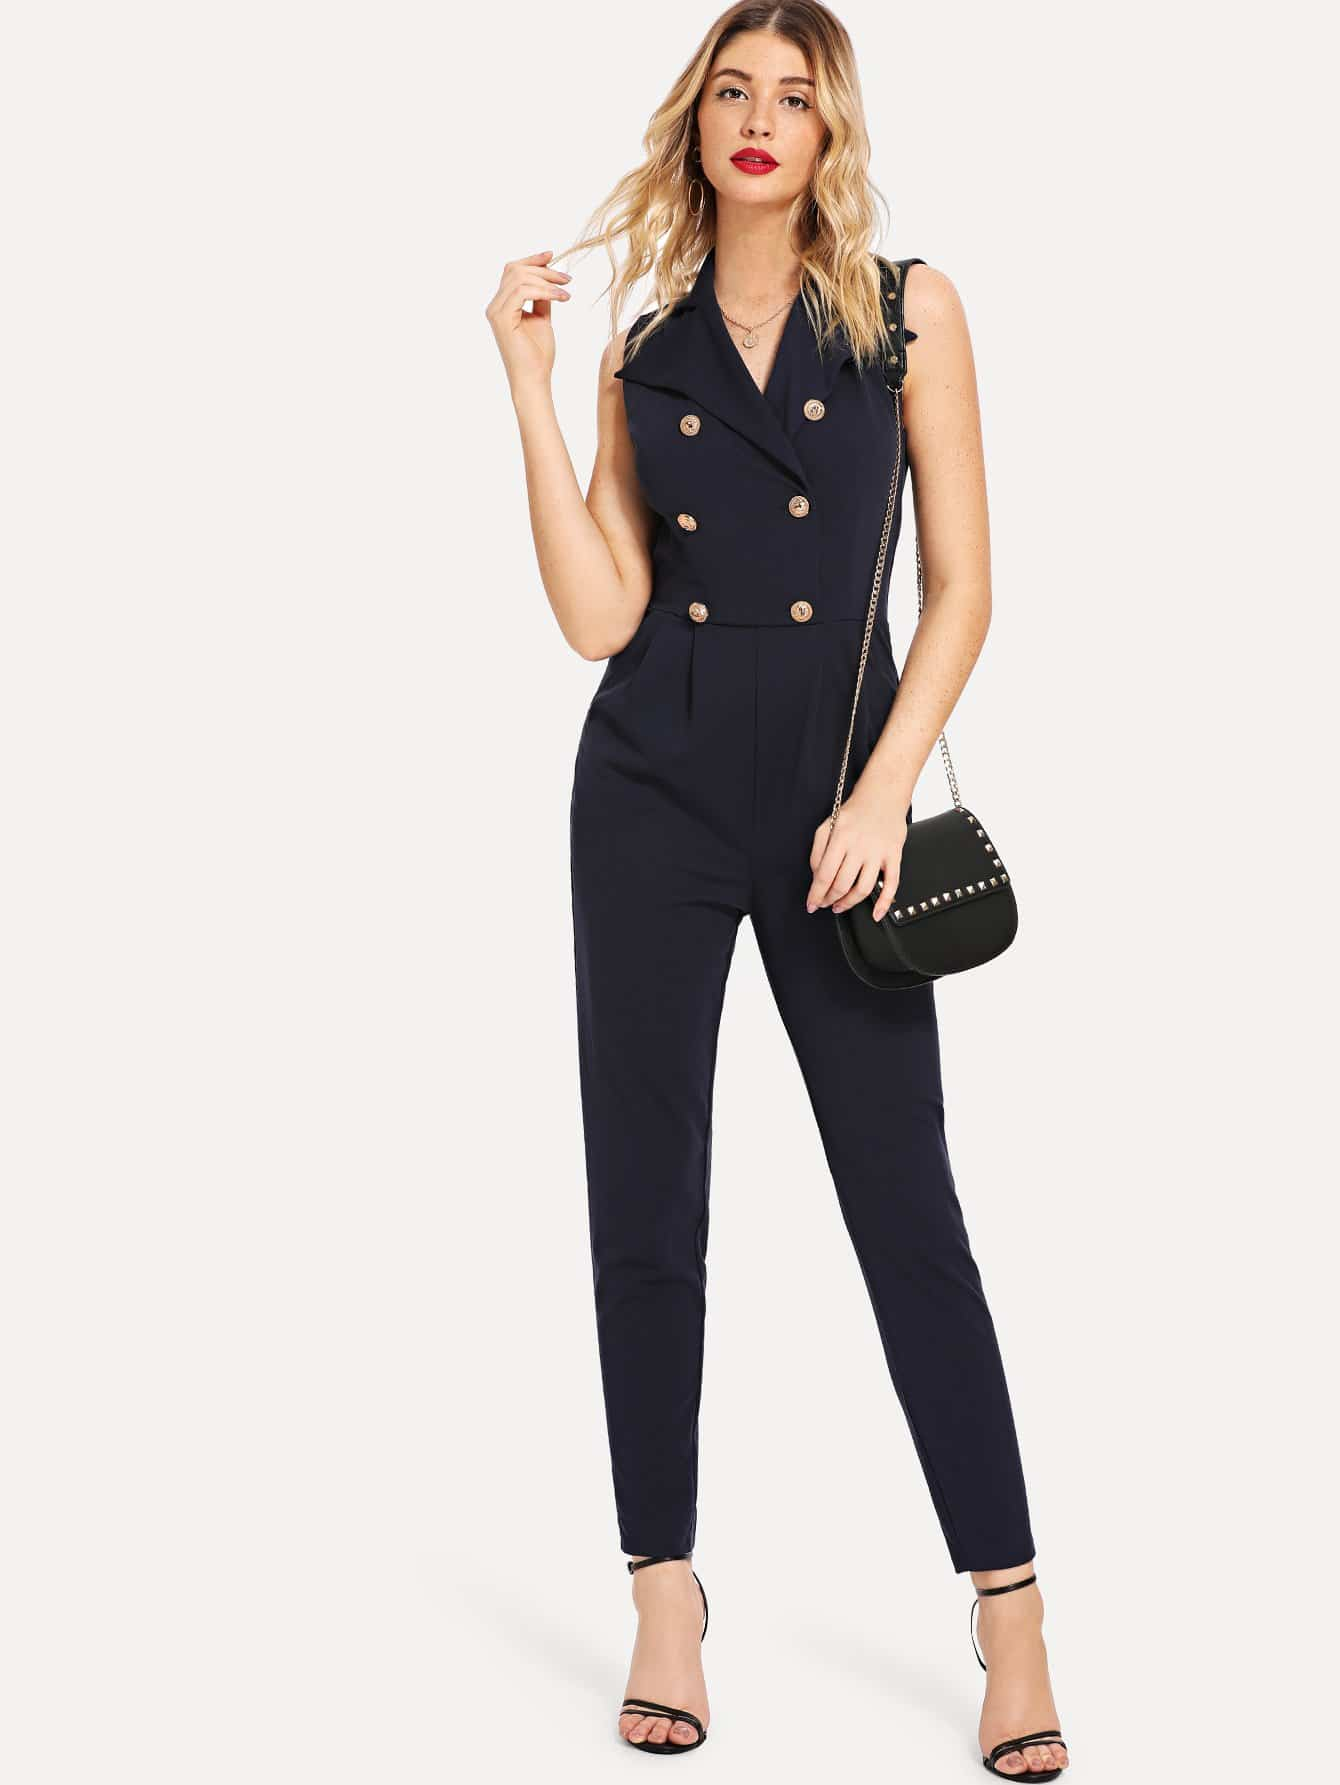 SHEINDouble Button Pleated Jumpsuit